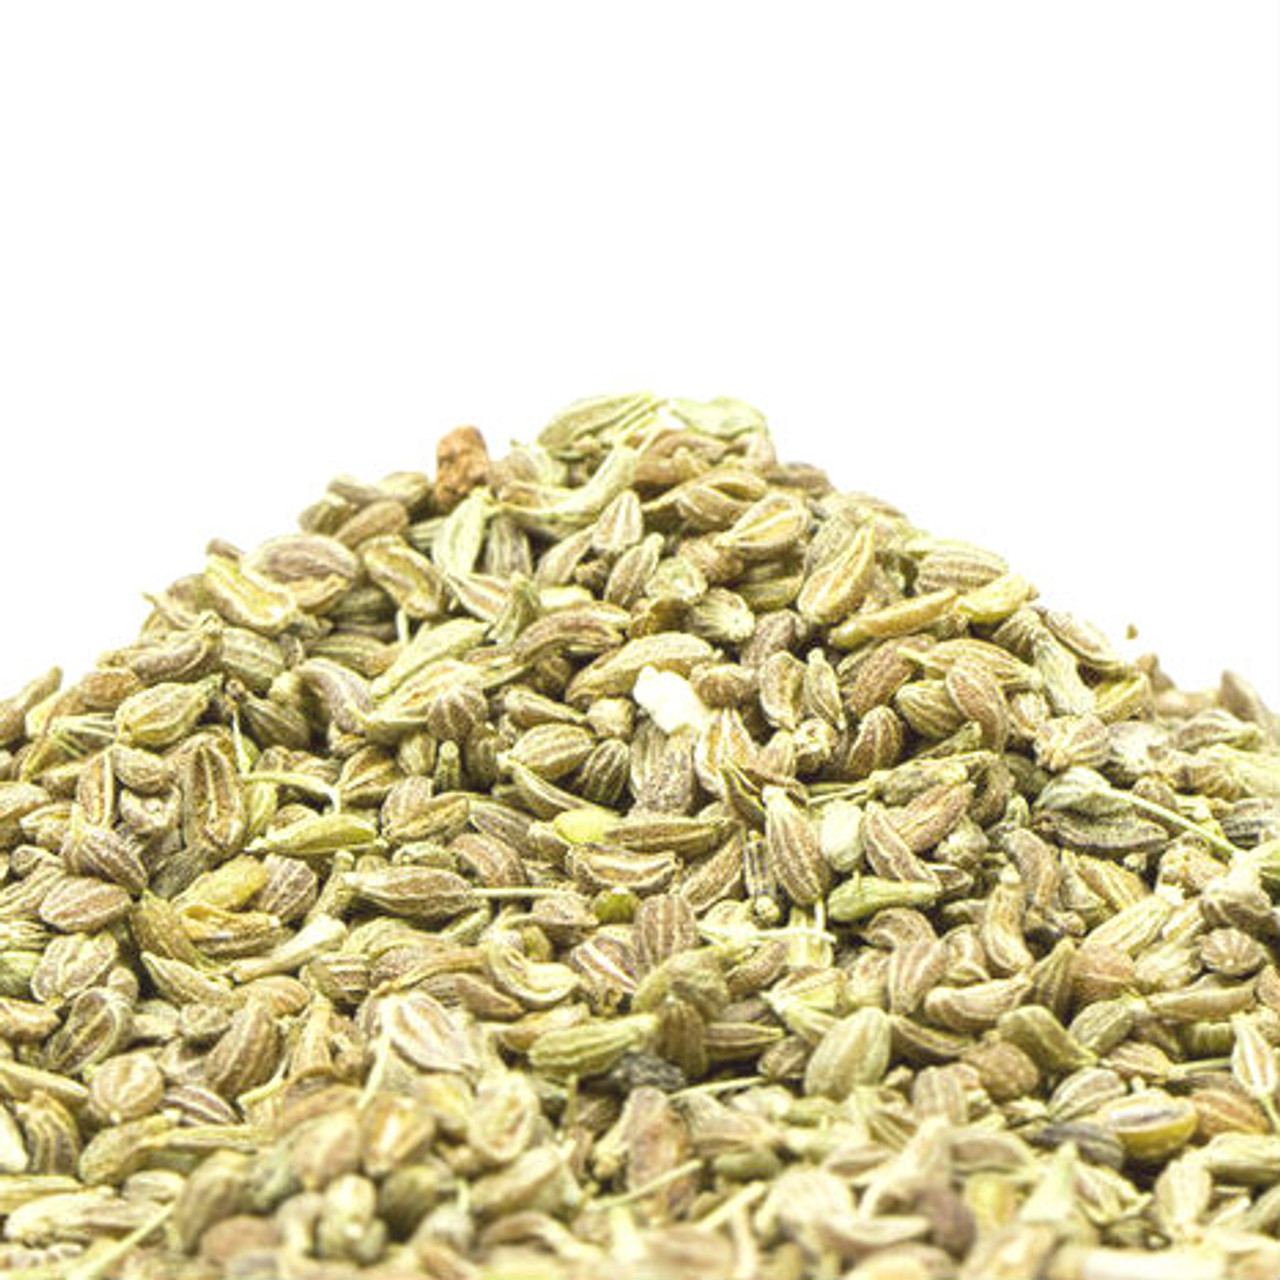 Anise seeds feature a delicately sweet and aromatic bouquet with a distinctive licorice flavor. Great in cookies, breads, cakes and desserts such as Italian biscotti and pizzelle cookies. Use for making sausage. Use in soups, stews, curries. Add seeds in the poaching water of fish and shellfish.